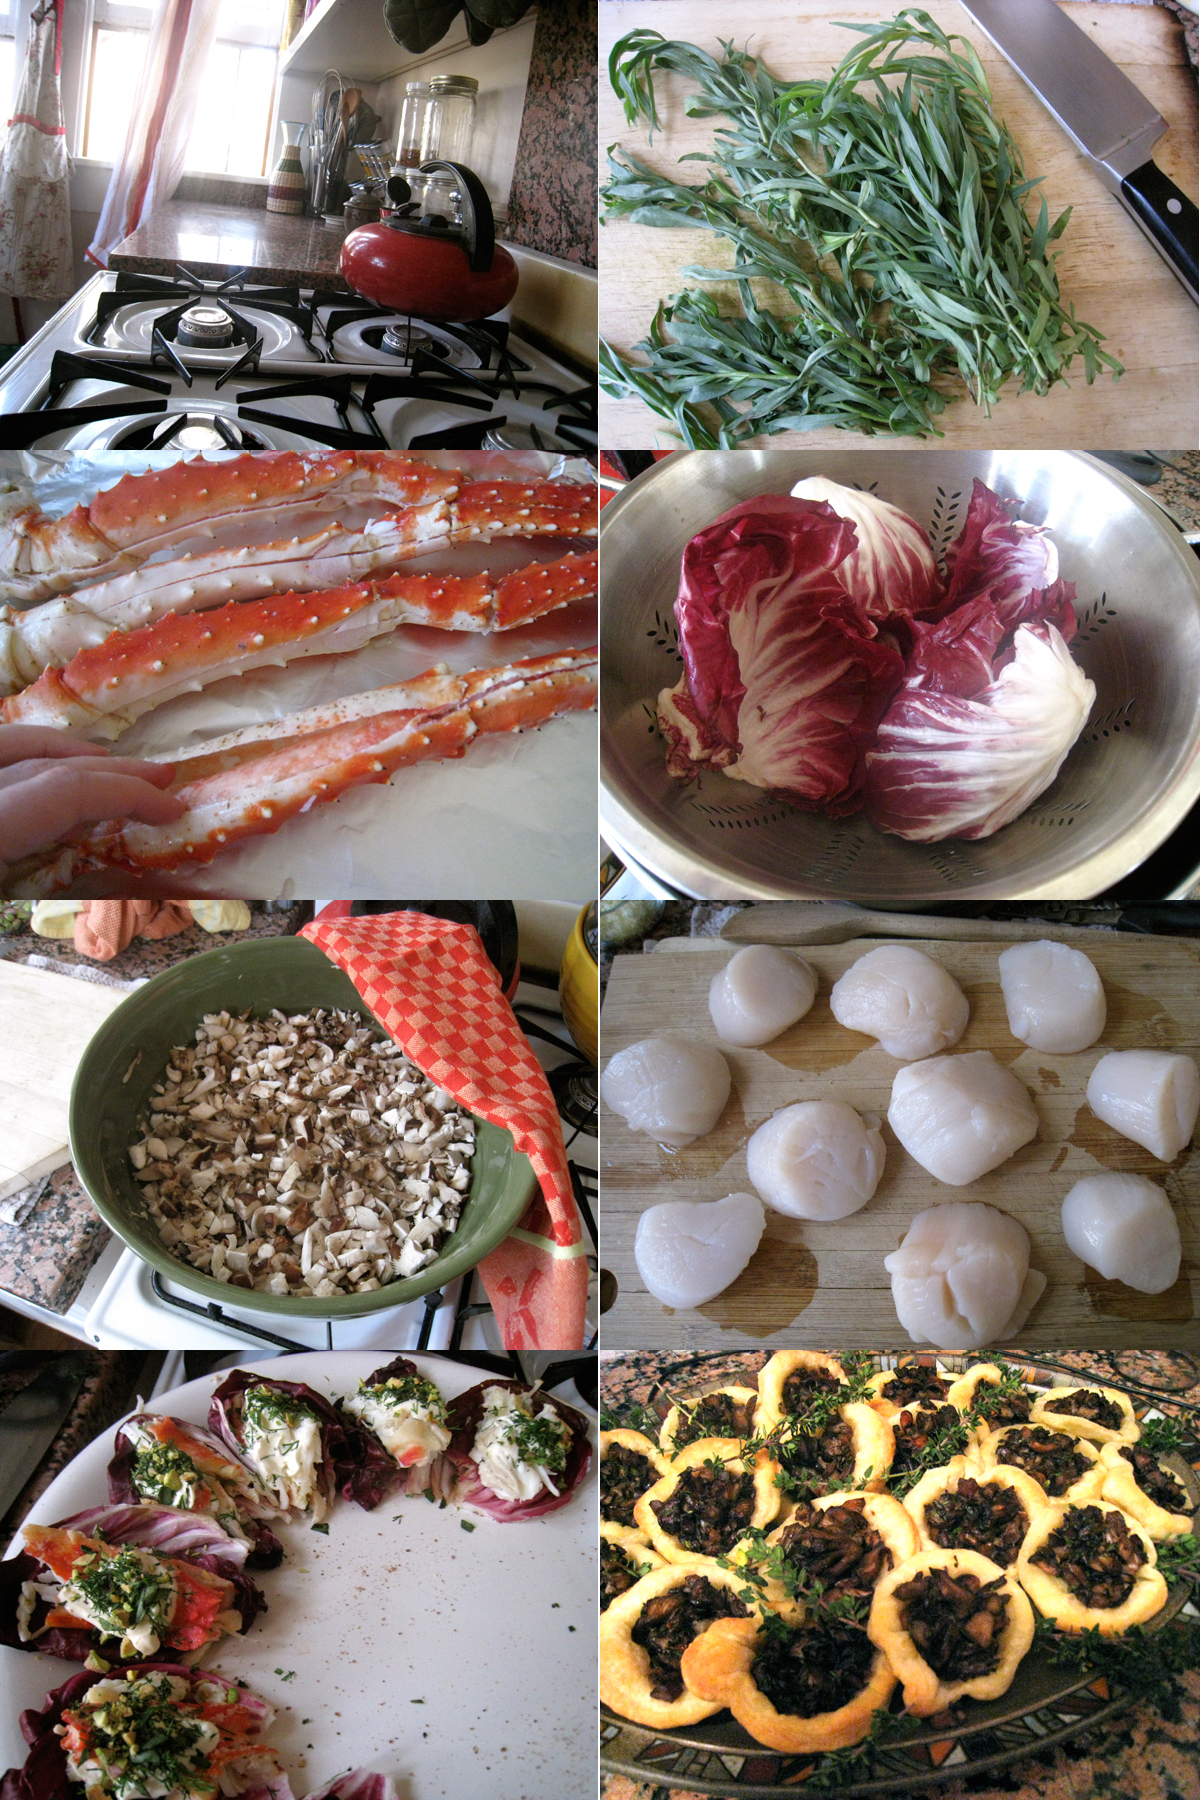 Hors d'oeuvres blog image 1flt